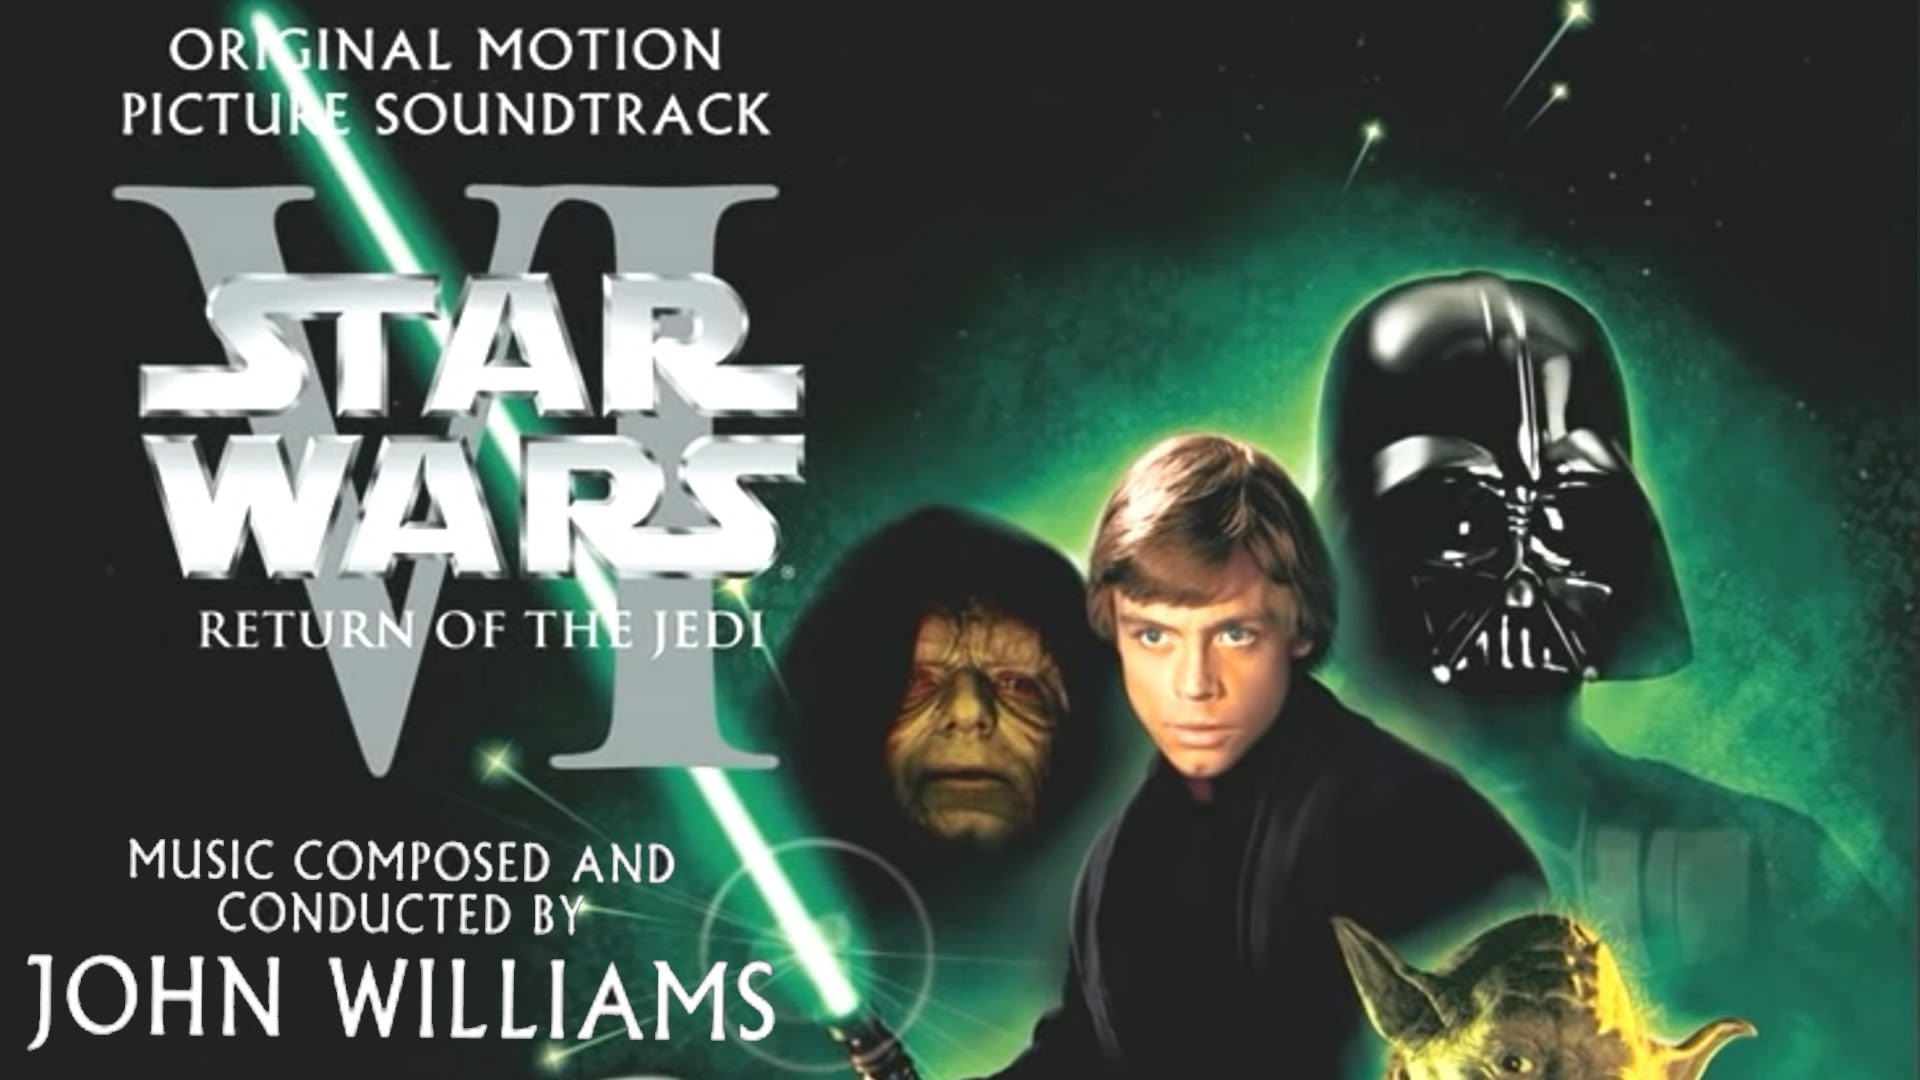 Star Wars Episode Vi Return Of The Jedi Wallpapers Movie Hq